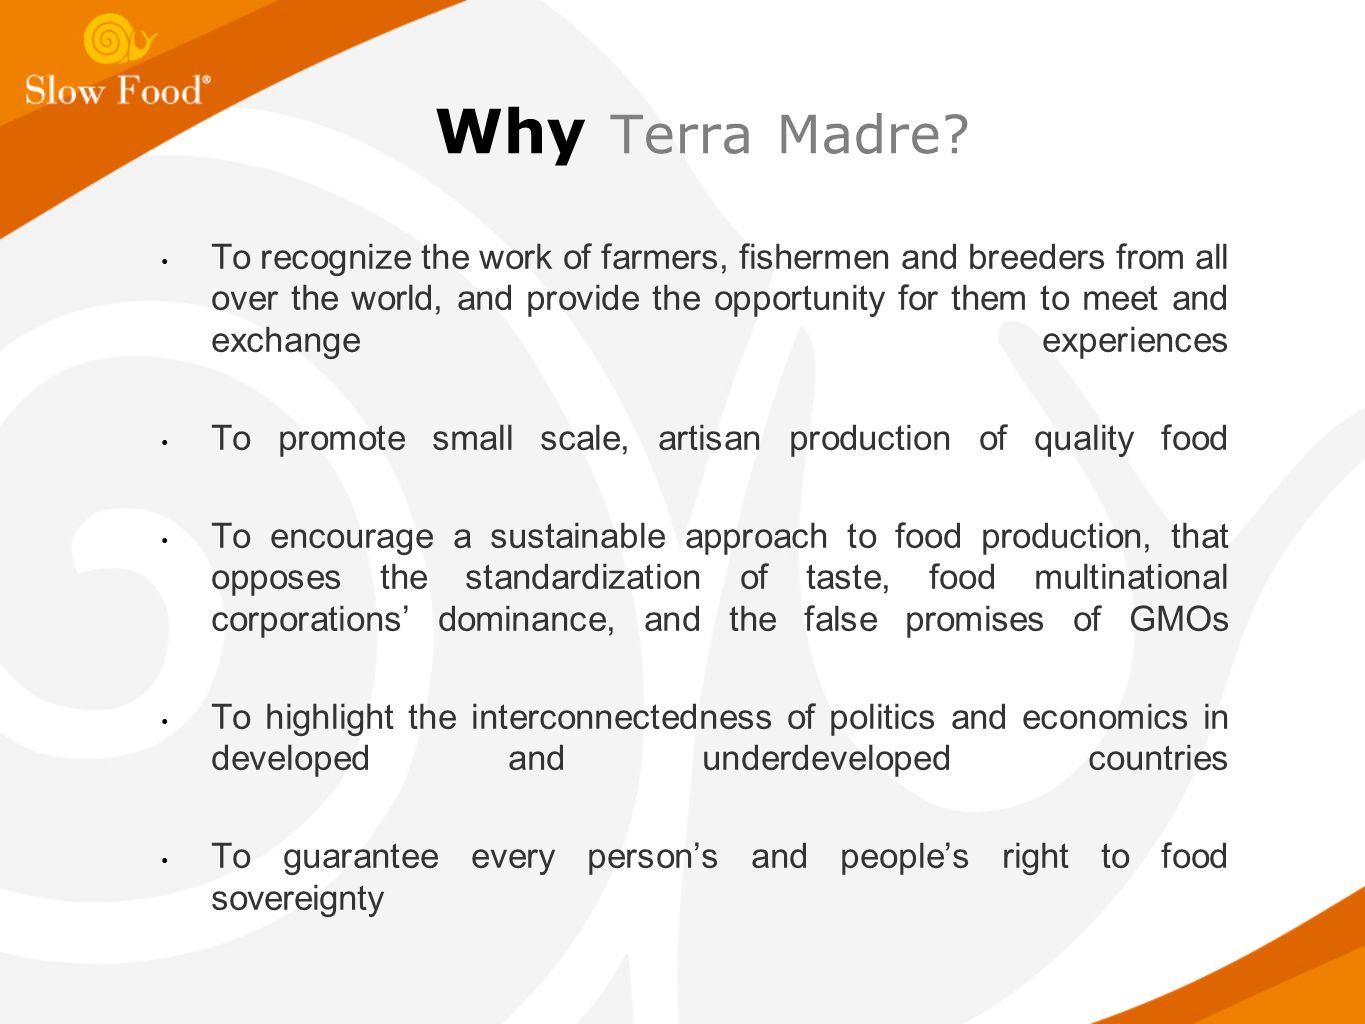 Why Terra Madre.